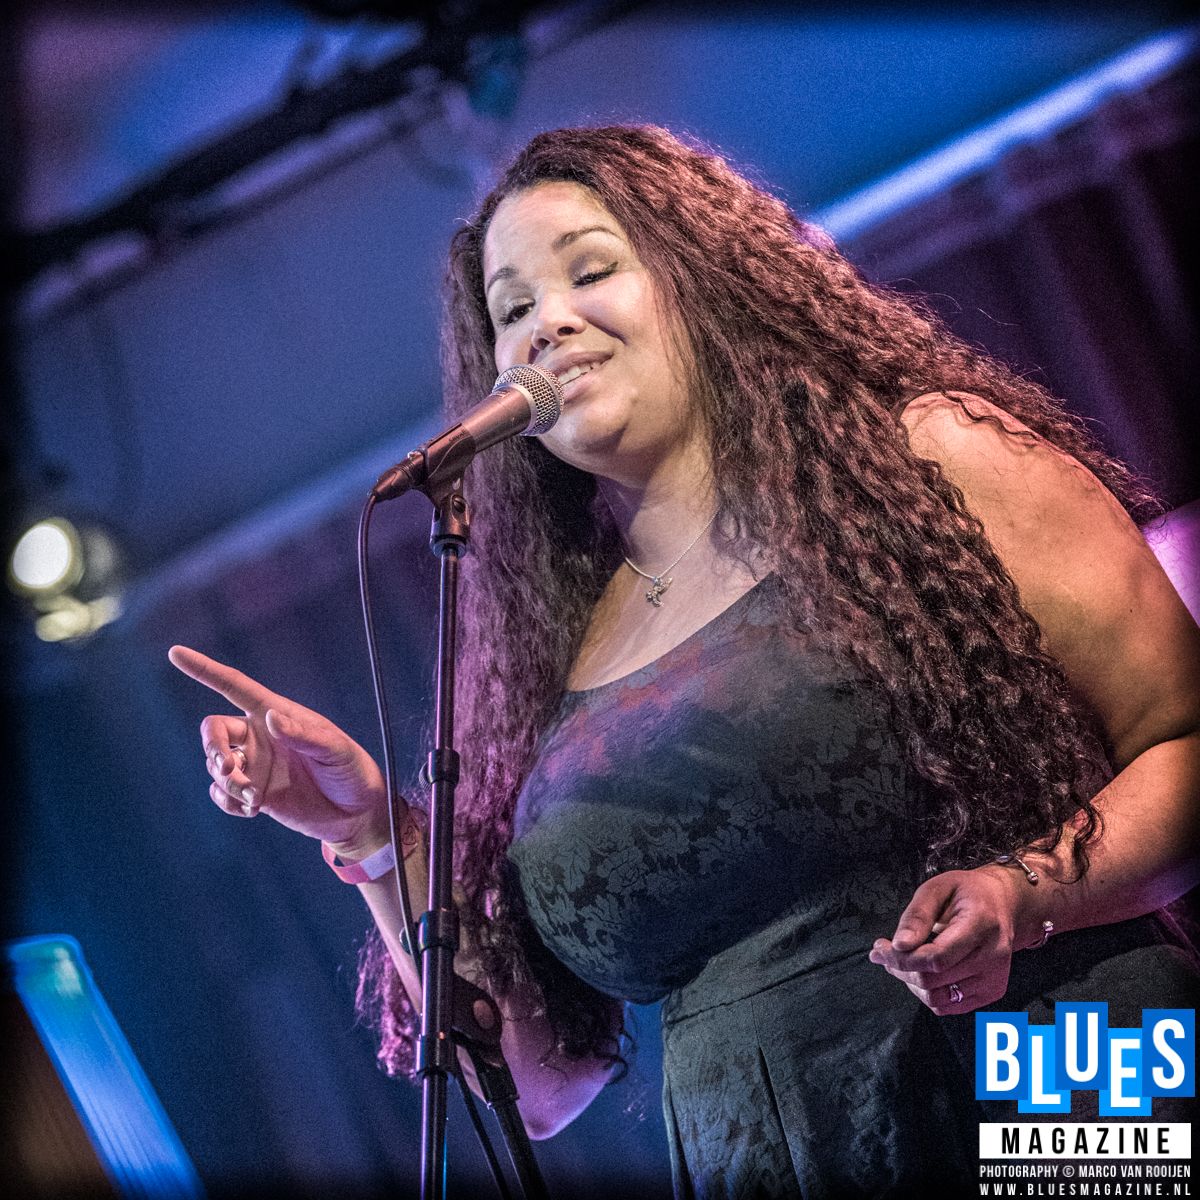 Flirting with The Blues 2017 - Kyla Brox